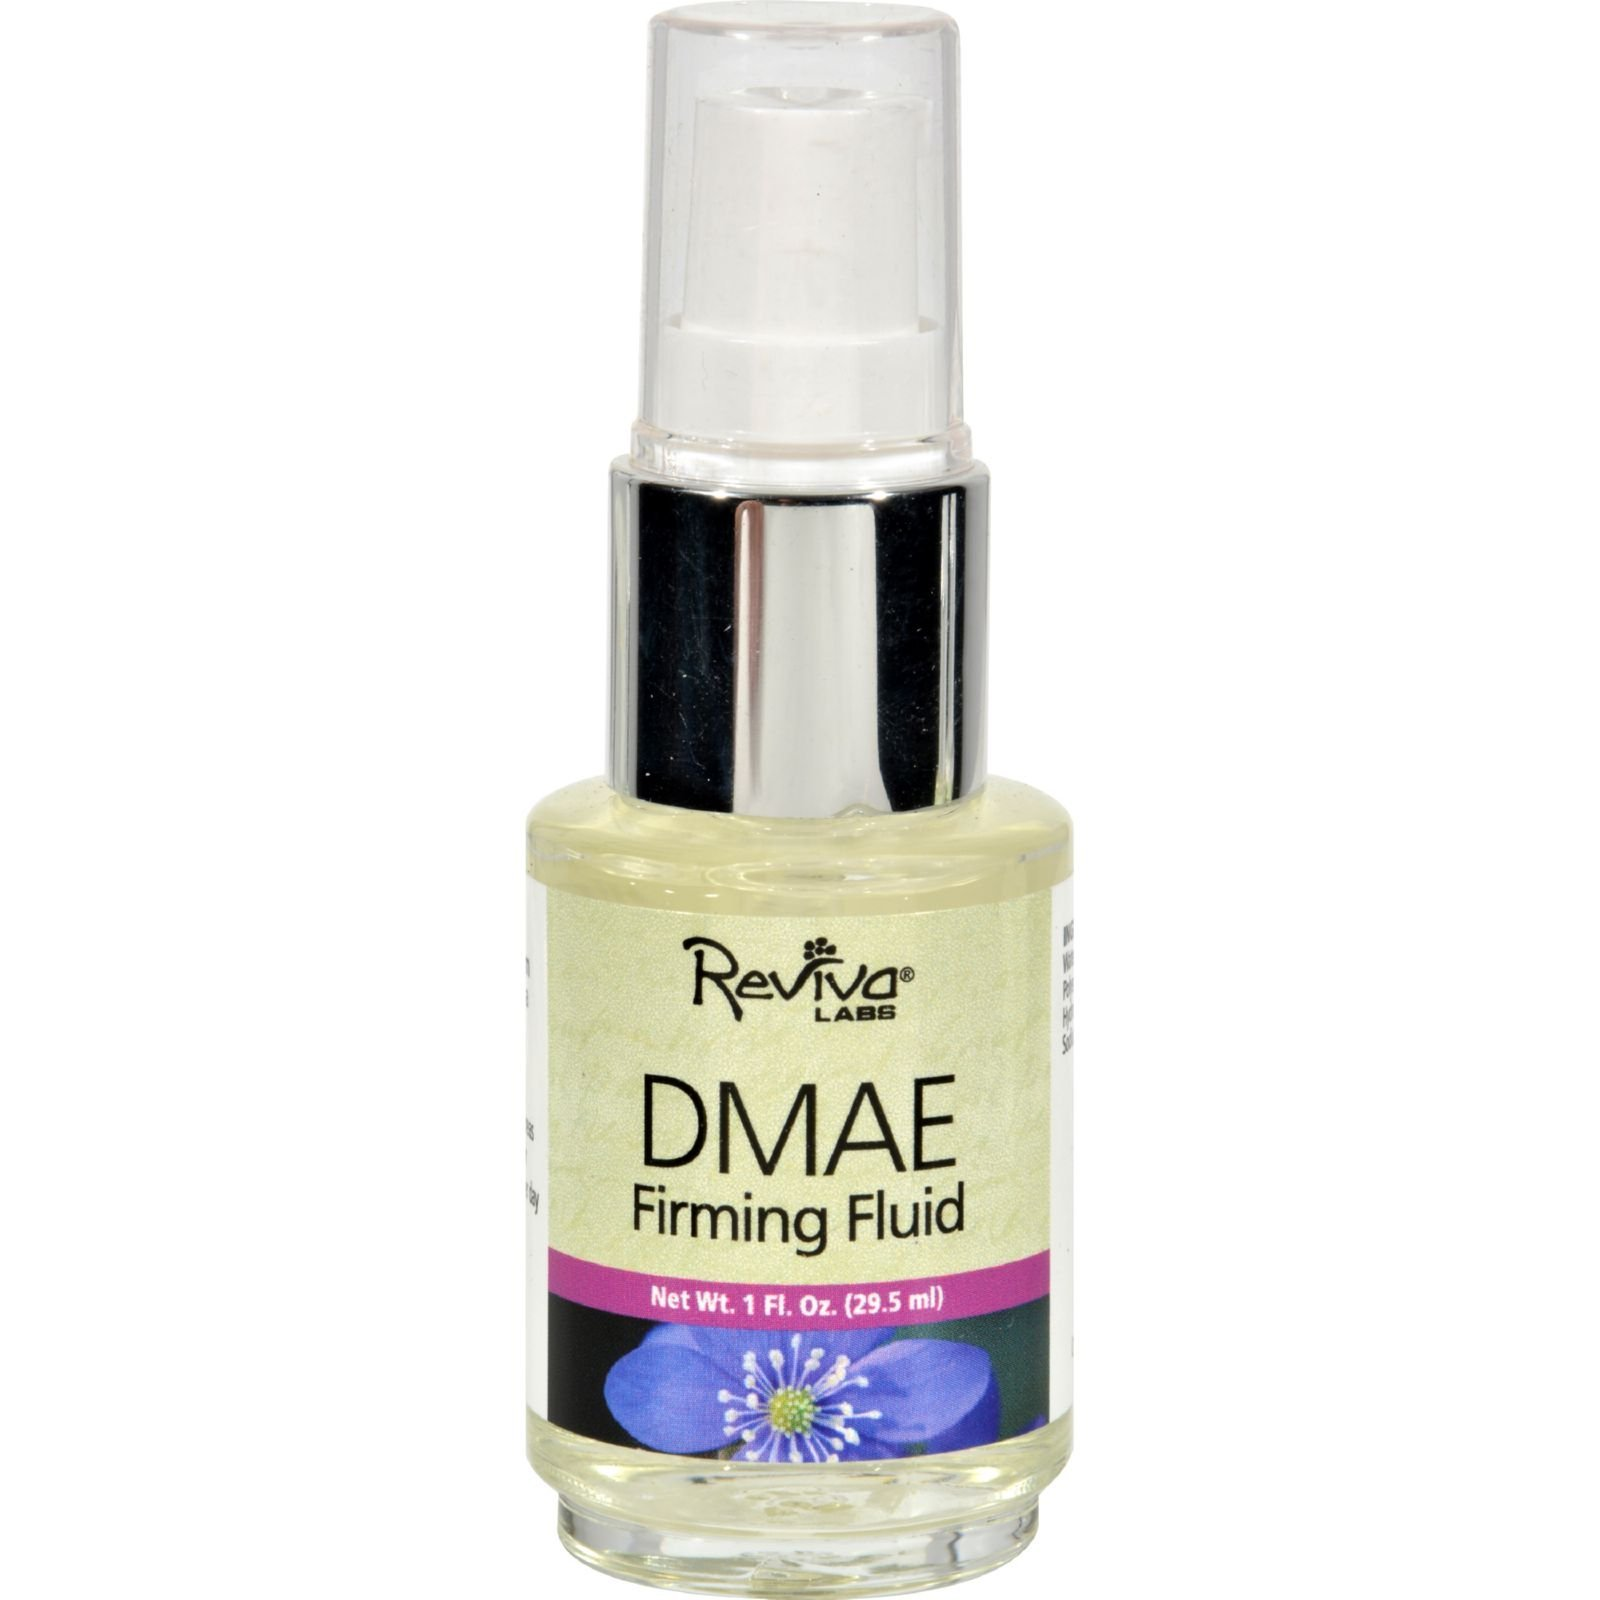 Reviva Labs DMAE Firming Fluid, 1 Fluid Ounce